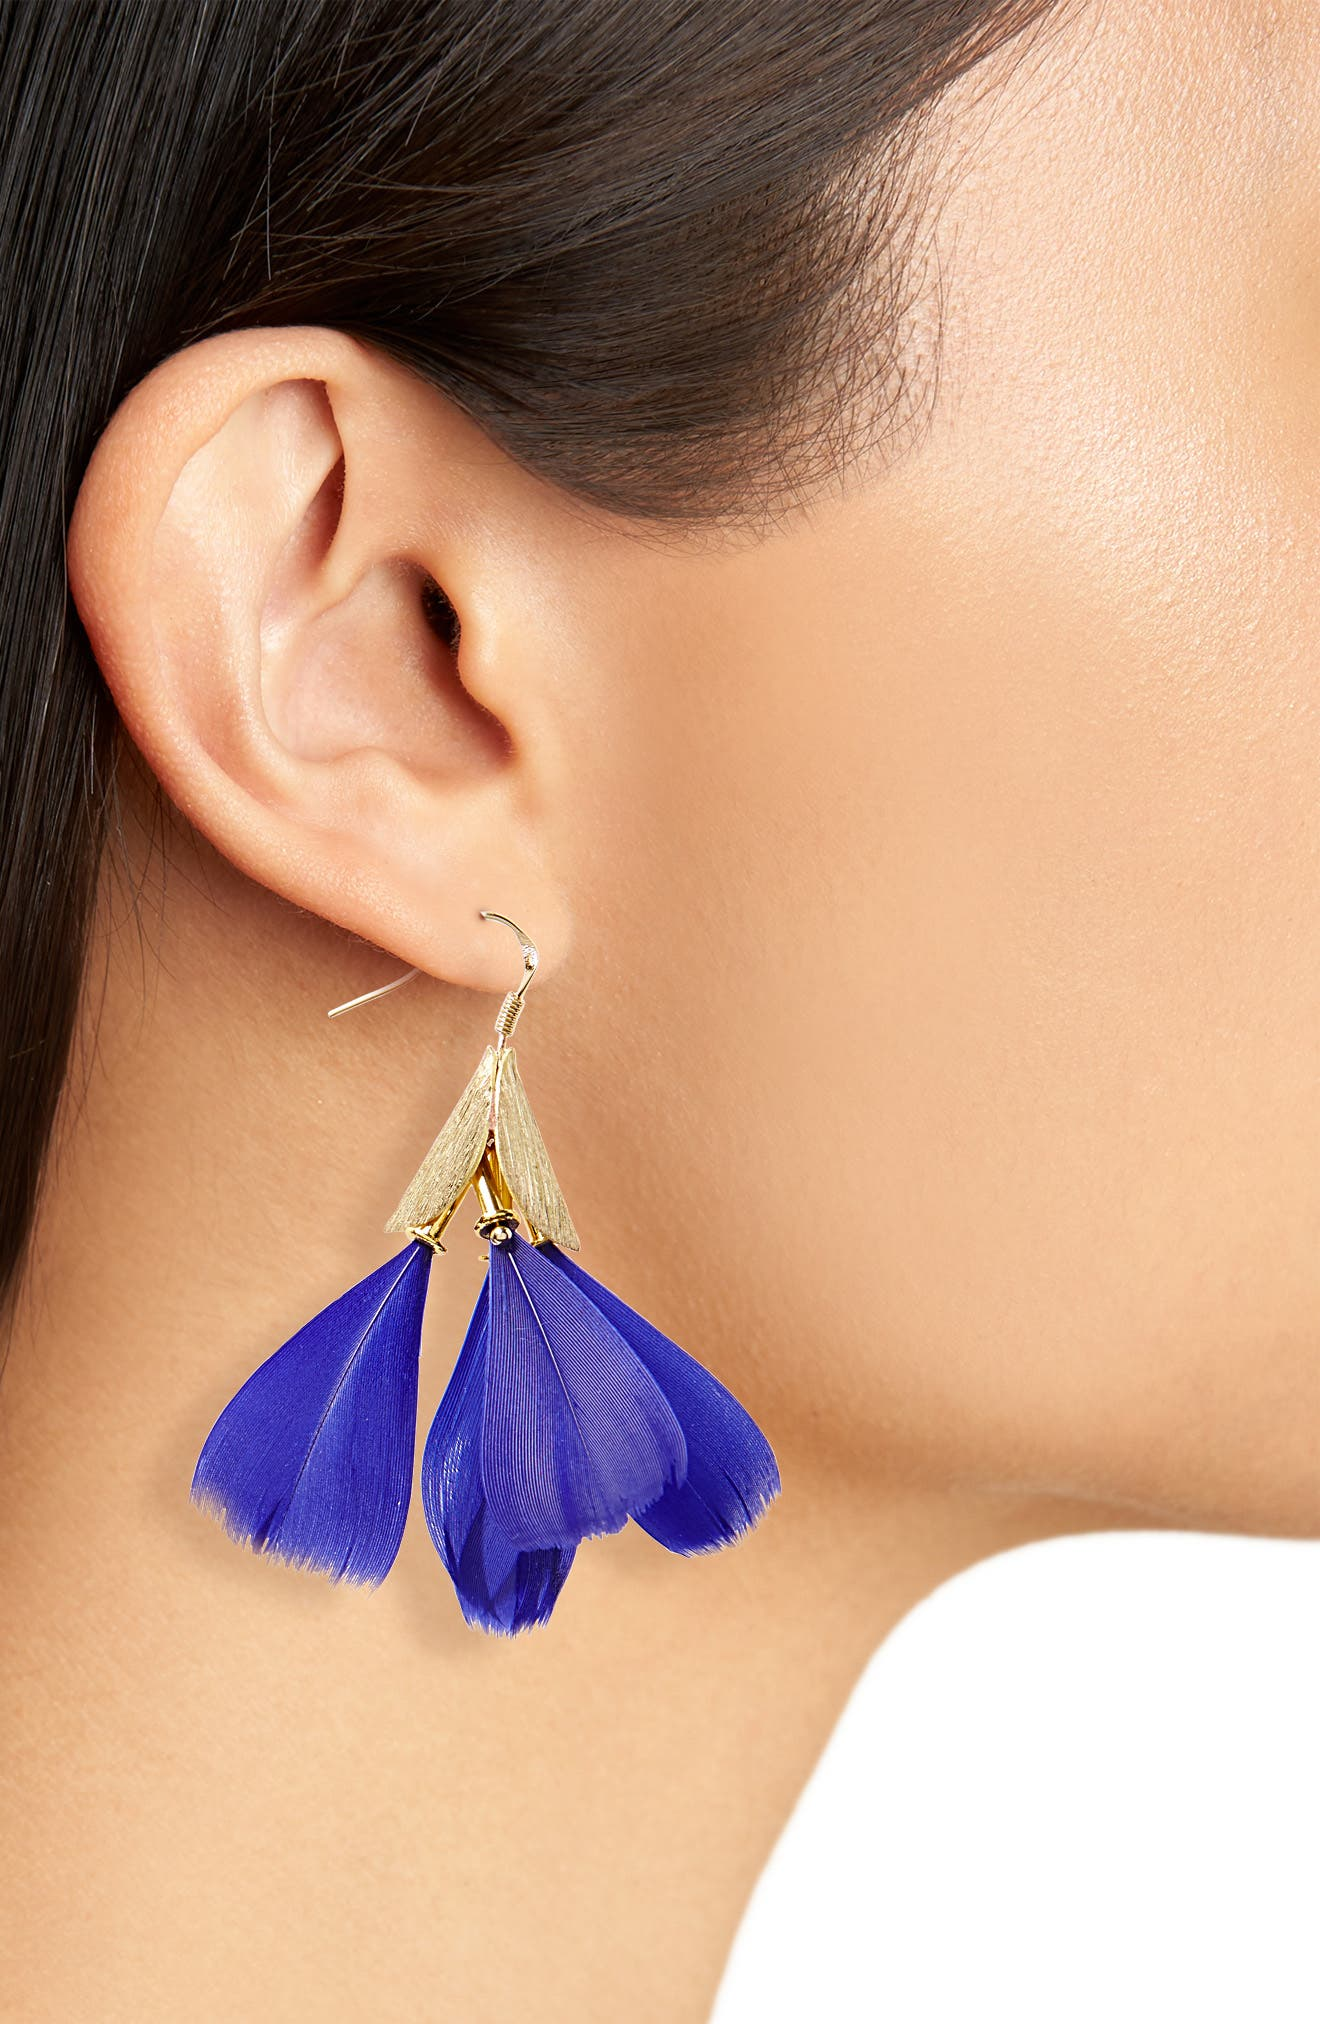 Dancing Feather Earrings,                             Alternate thumbnail 2, color,                             400